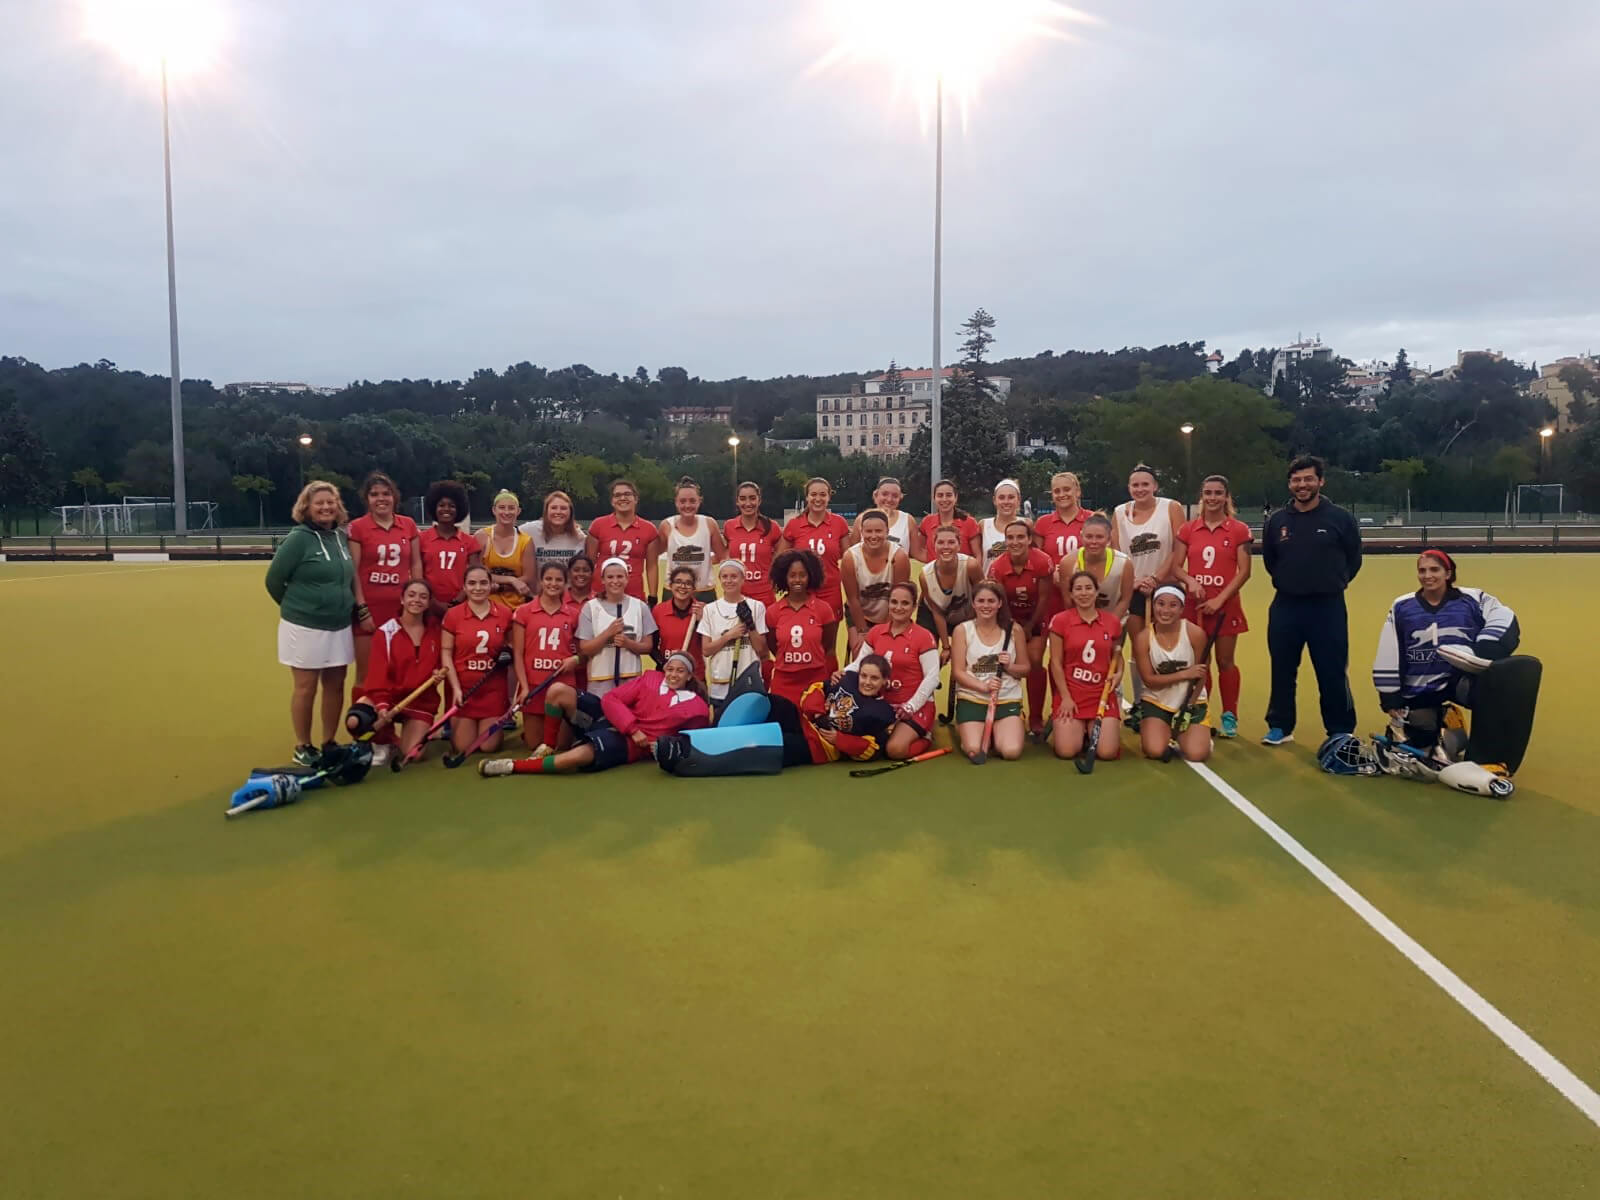 Field Hockey Tour Portugal Spain Italy 4